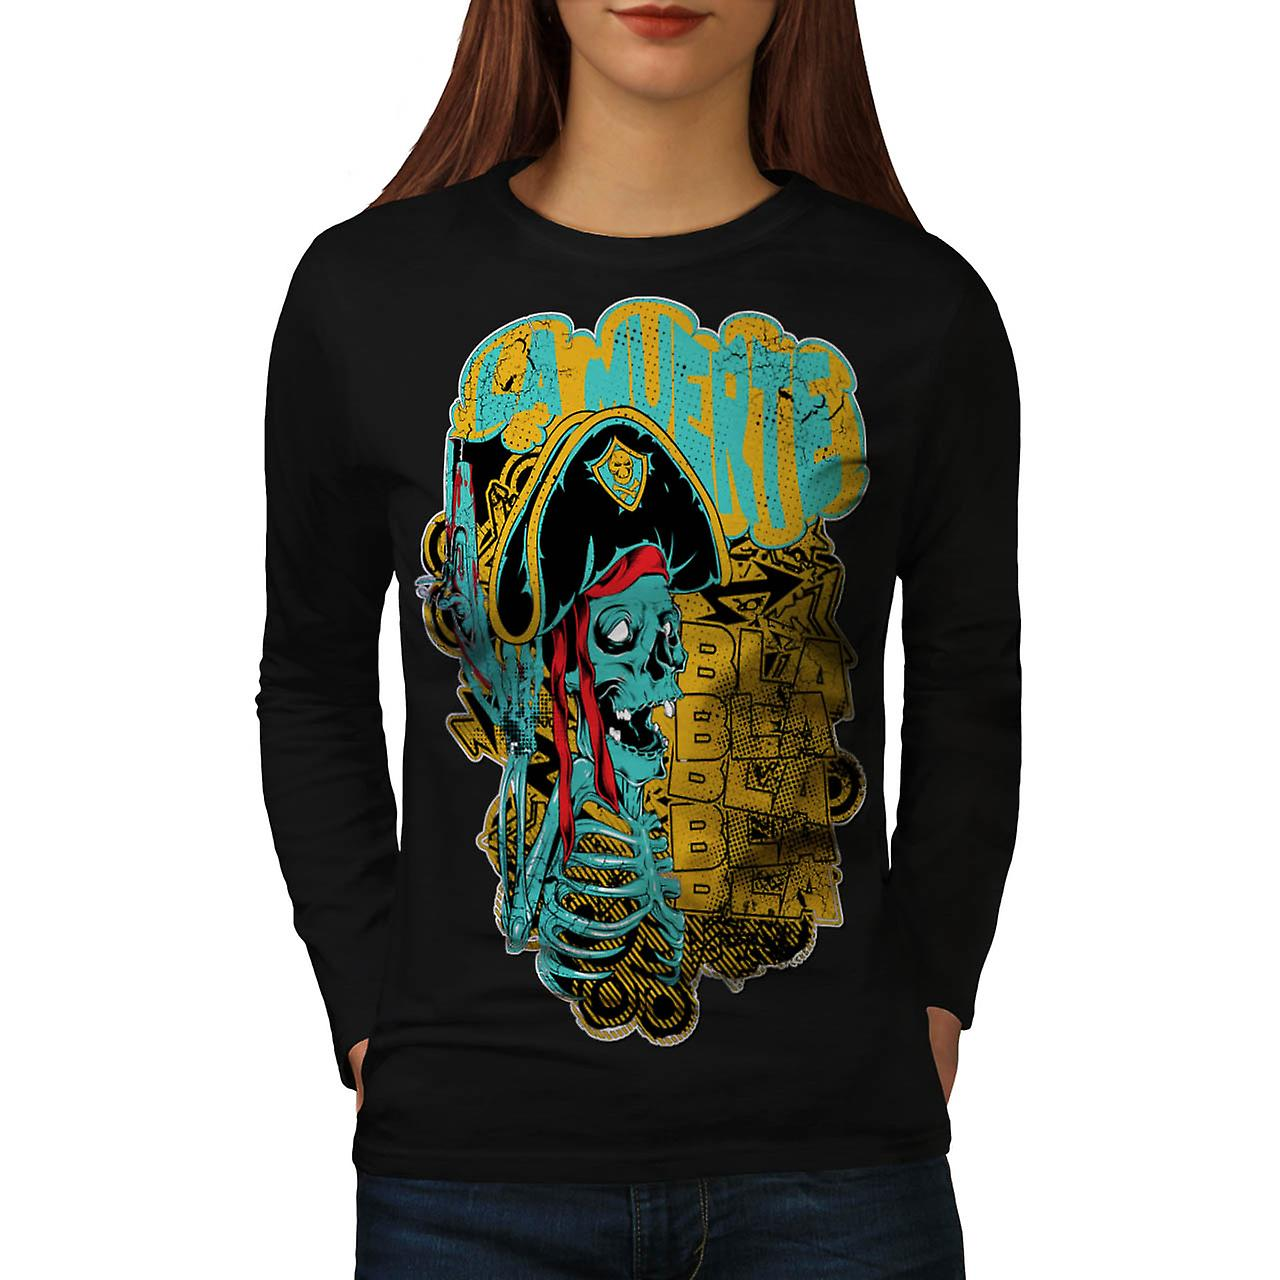 Pirate Skull Ghost Danger Talk femme noire manches longues T-shirt | Wellcoda